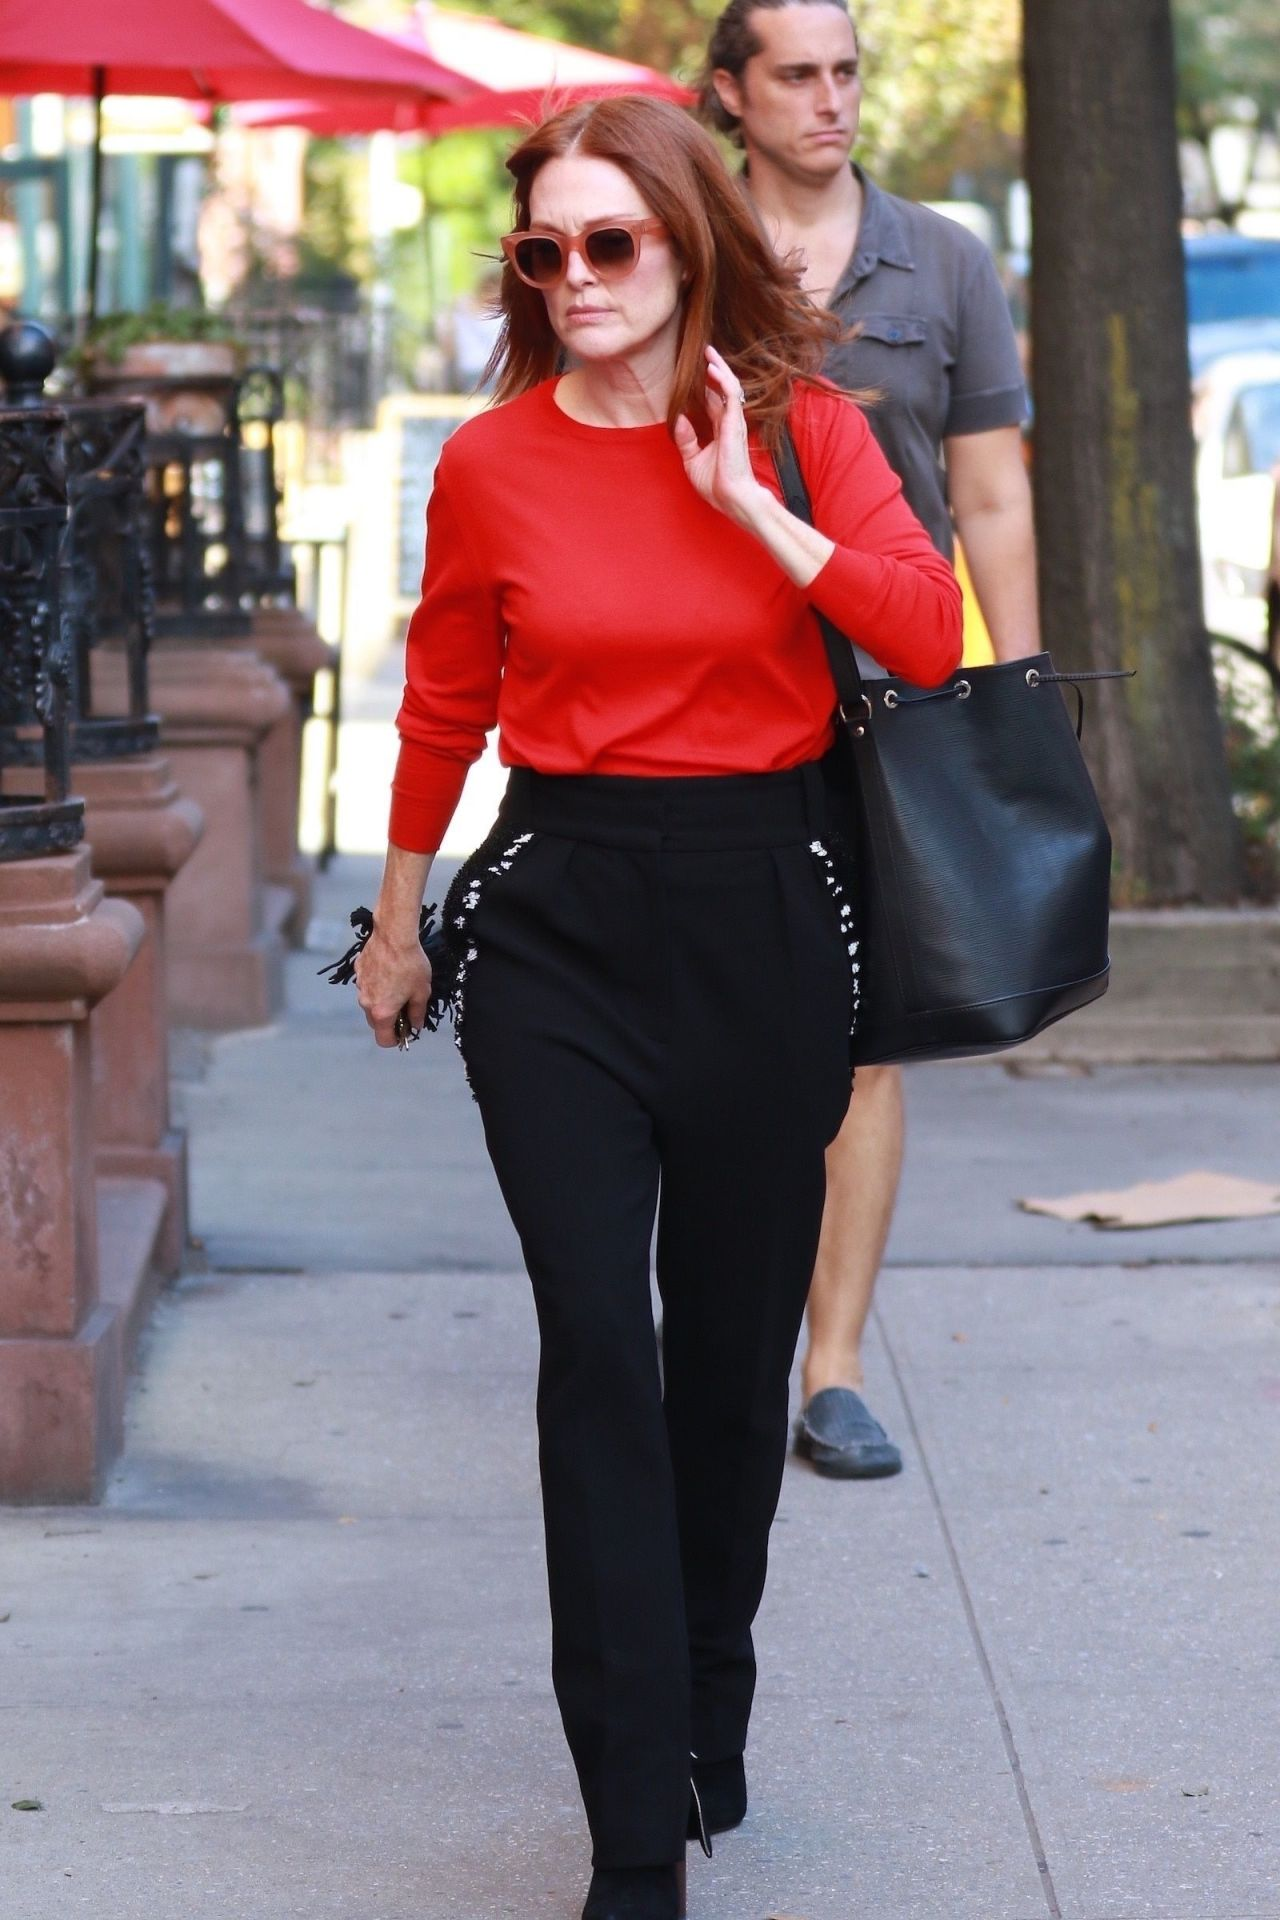 Julianne Moore Casual Style Running Errands In Nyc 10 10 2017